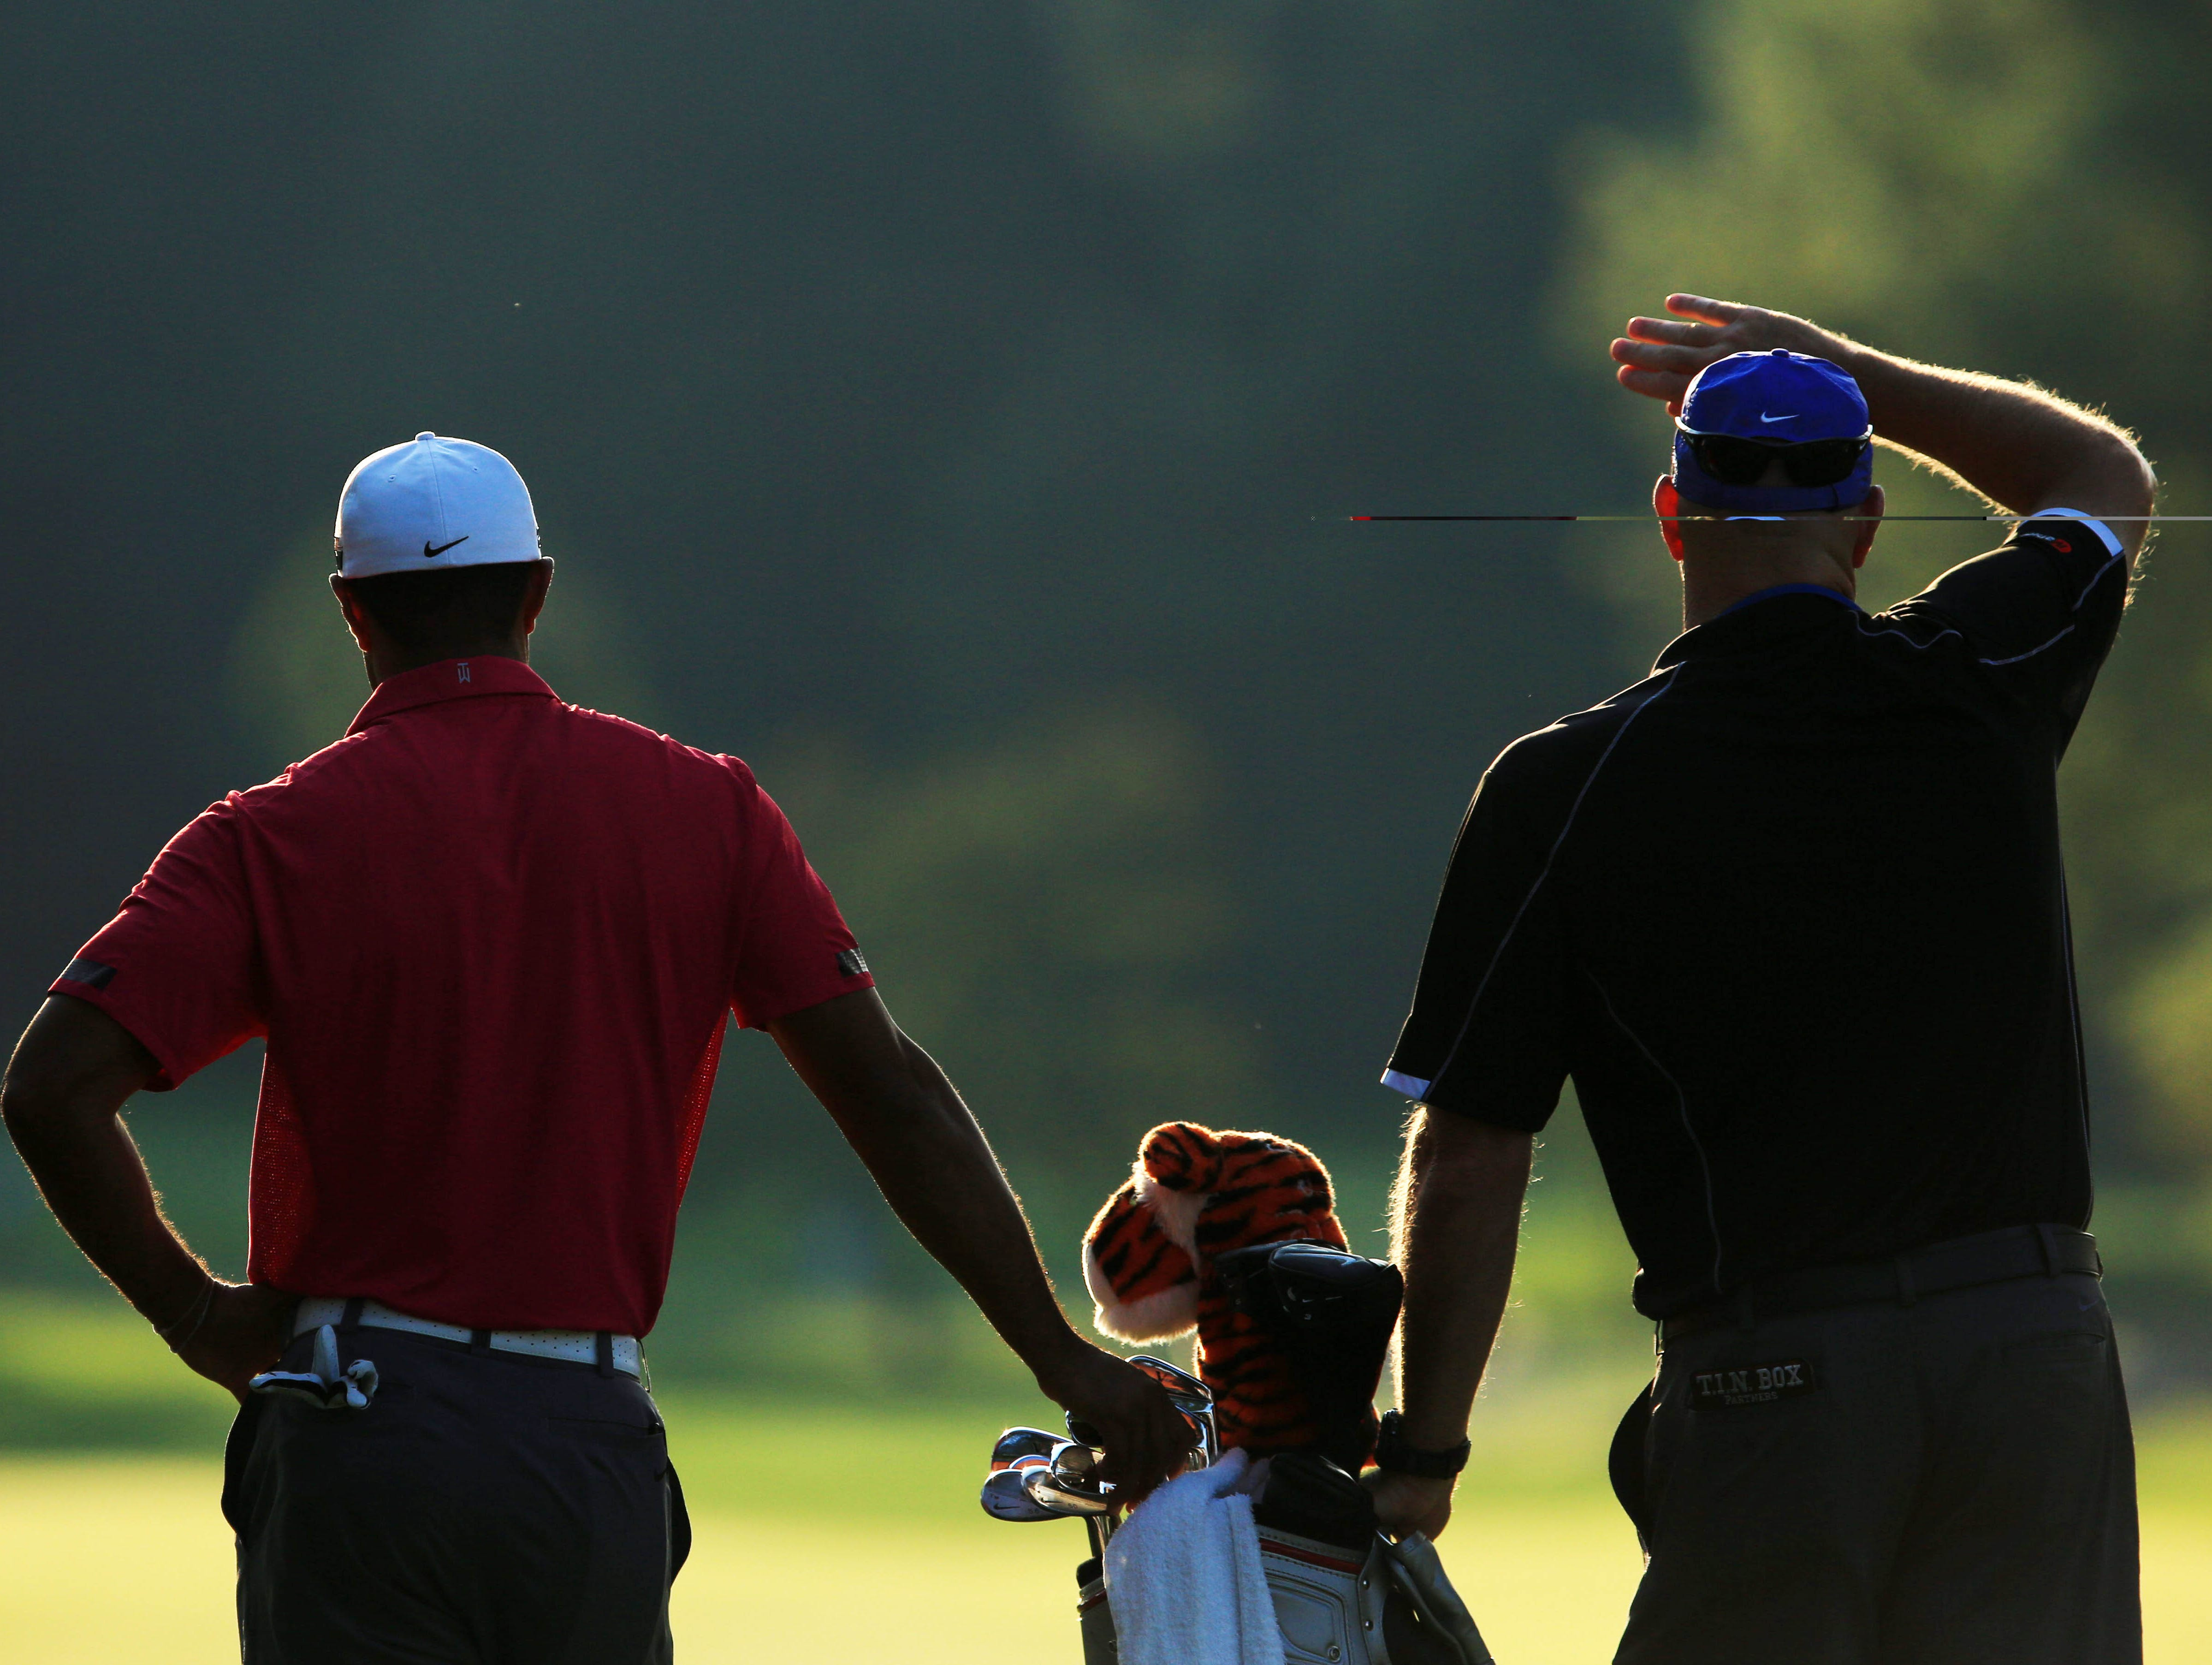 Tiger Woods and his caddie Joe LaCava during the practice round of the 95th PGA Championship at Oak Hill Country Club.